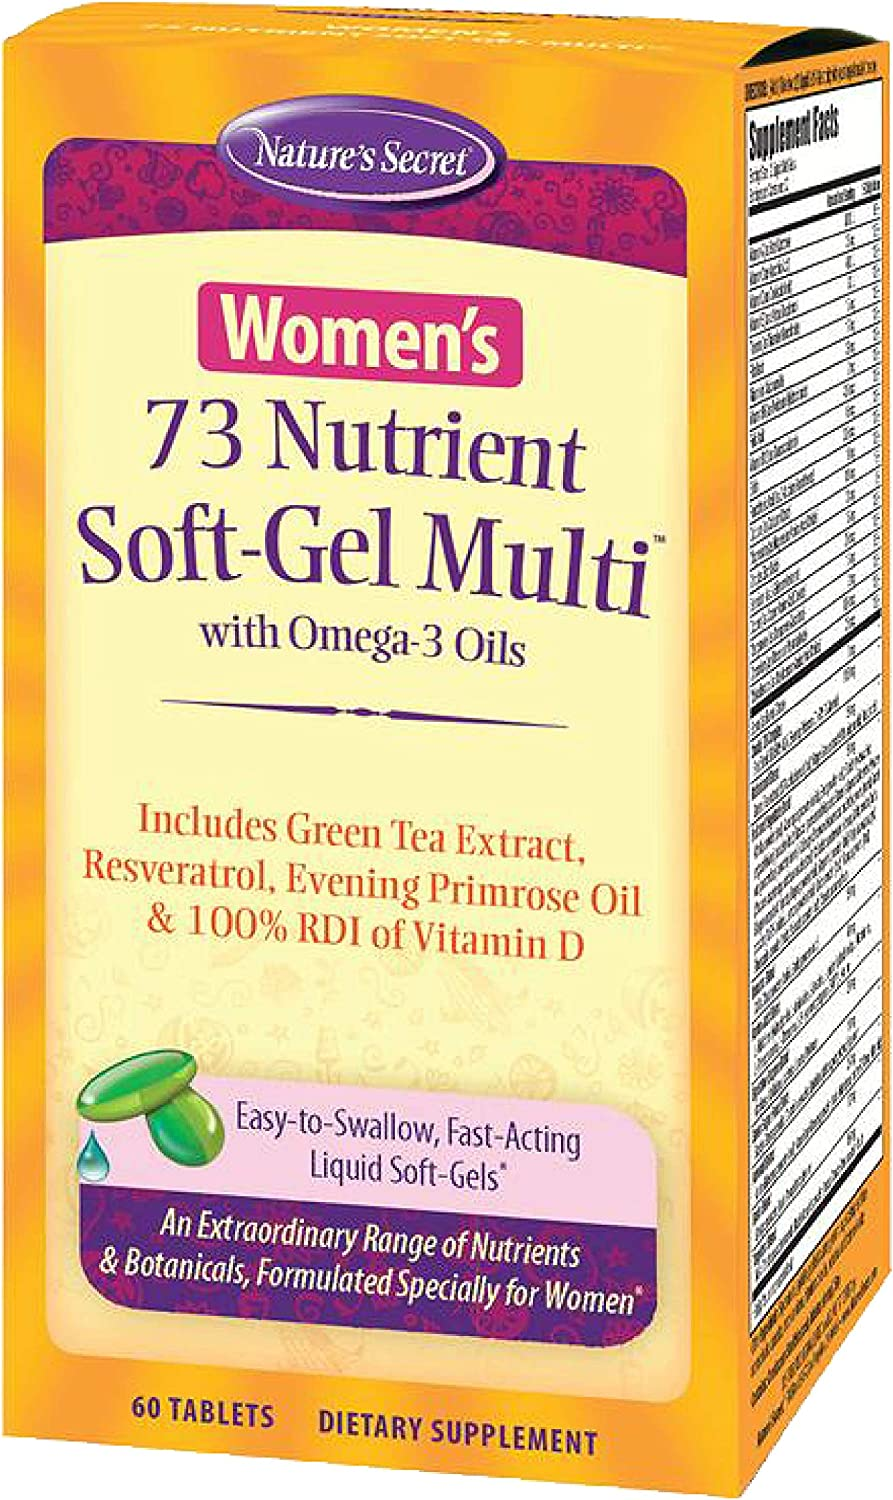 Nature's Secret Women's 73 Nutrient Multivitamin - Daily Essential Vitamins, Minerals, Antioxidants, Enzymes & Super Food Blend Supports Women's Health, Wellness & Immune System - 60 Liquid Softgels